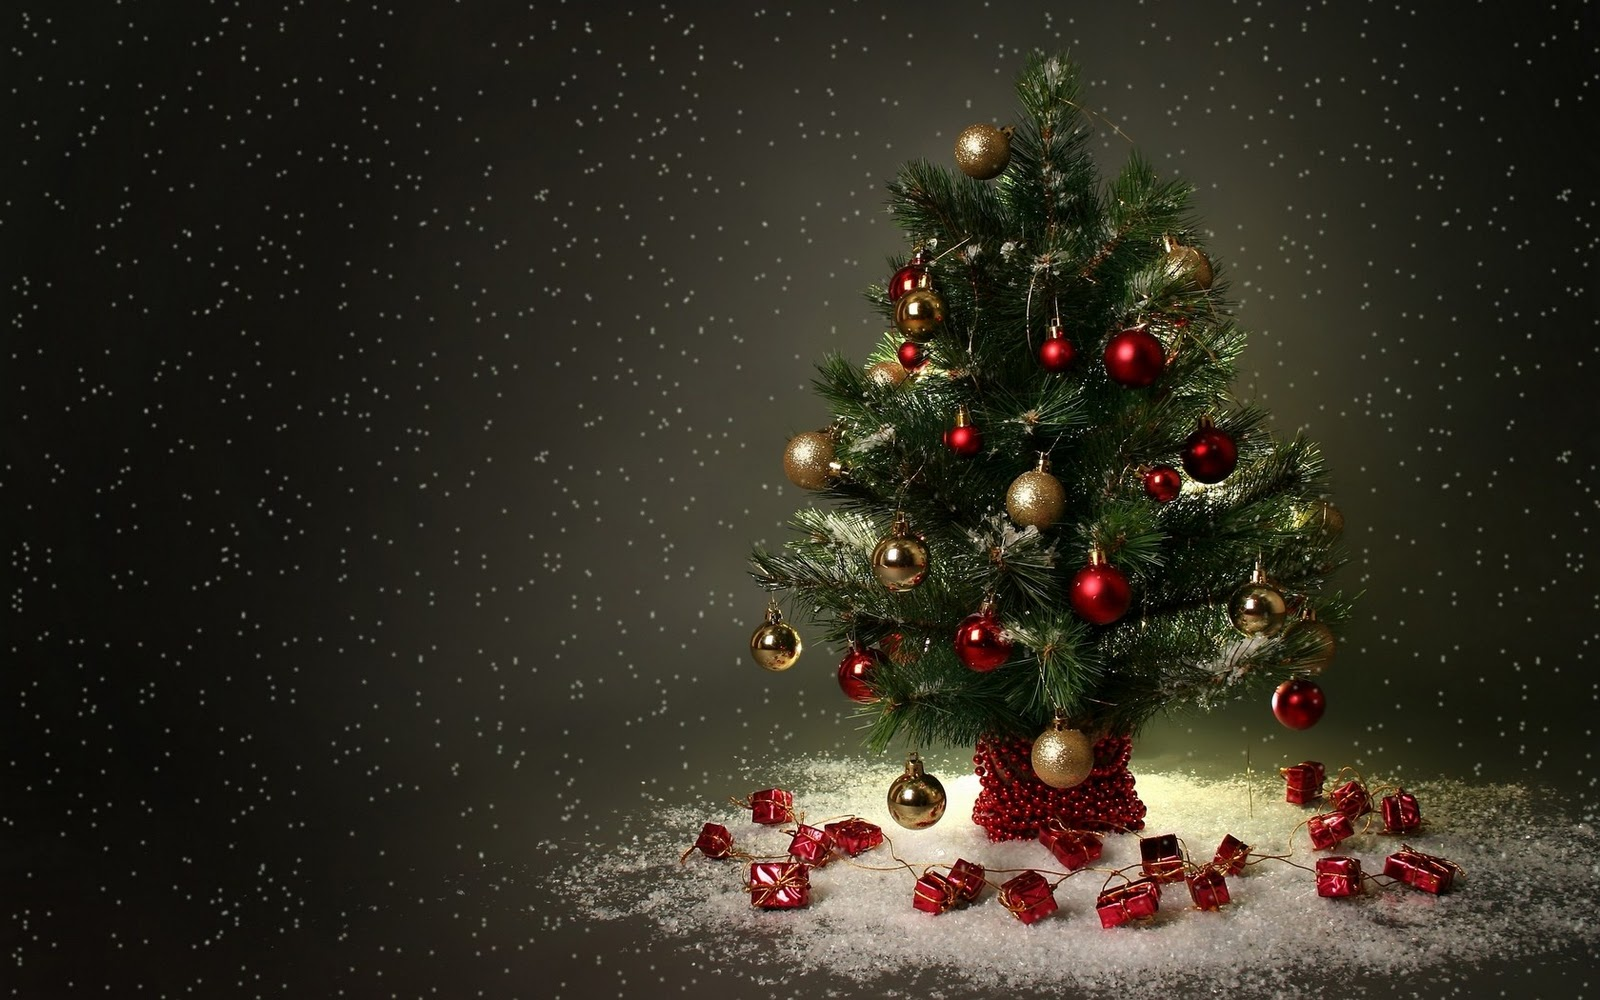 http://4.bp.blogspot.com/-RZbDWSJPNpM/Tt8OnFQpfTI/AAAAAAAAAeg/1qNTTWeEK5Q/s1600/Little+Christmas+Tree+Gifts+HD+Wallpaper+-+UniqueWalls.Blogspot.Com.jpg